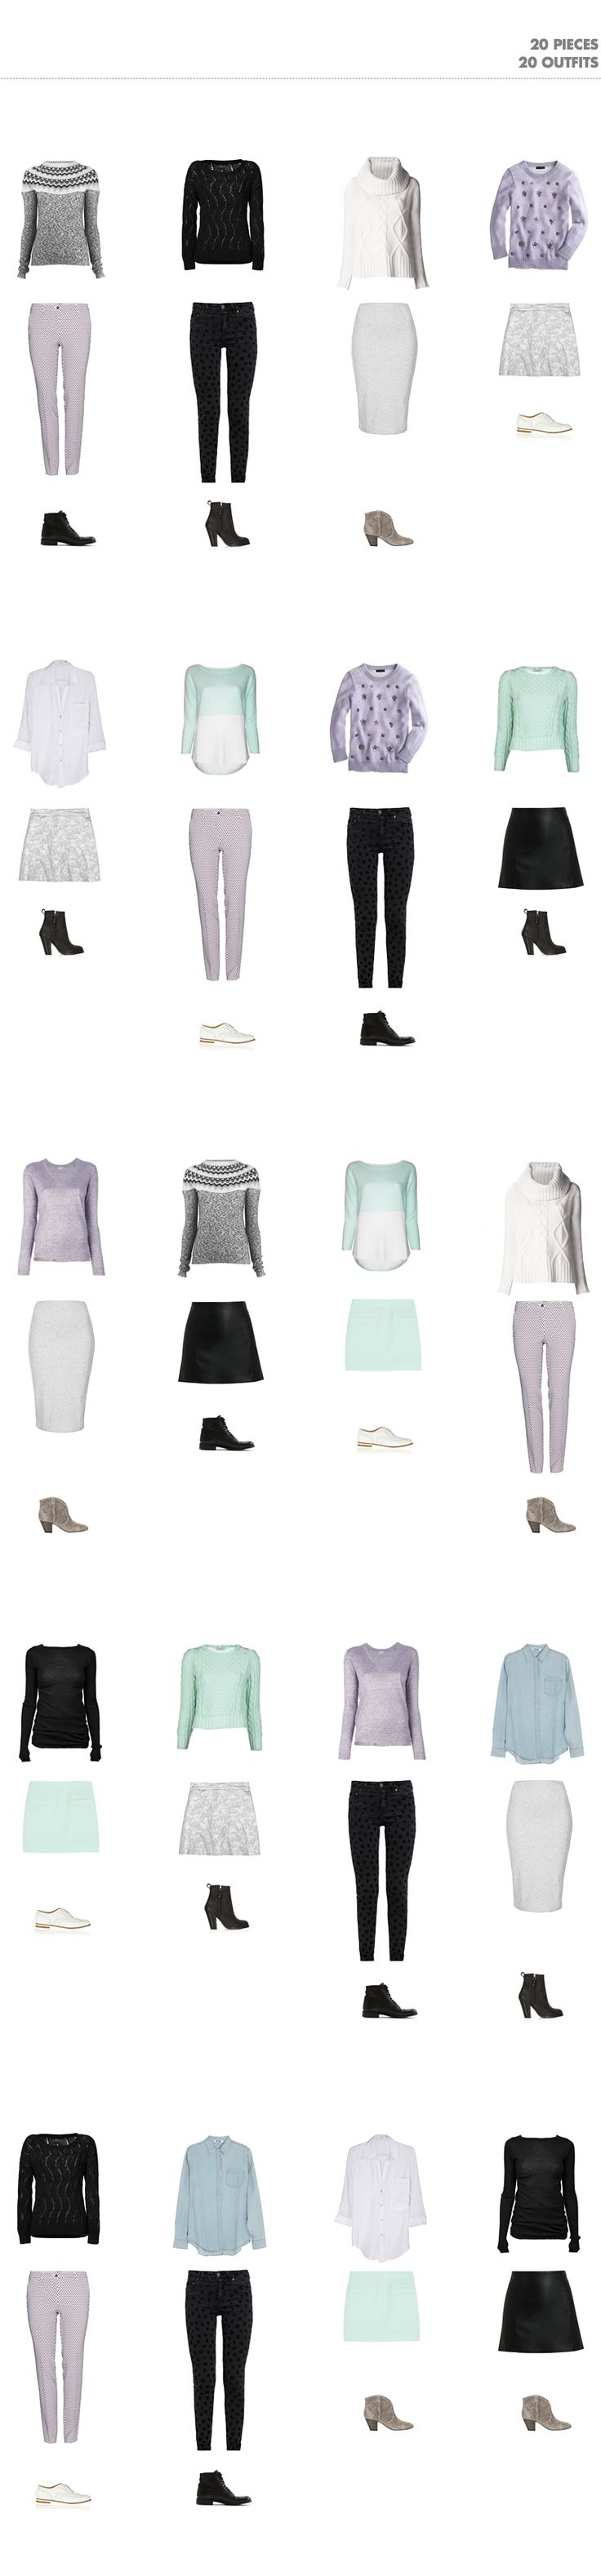 Pin Ups: Winter Capsule Wardrobe | knittedbliss.com